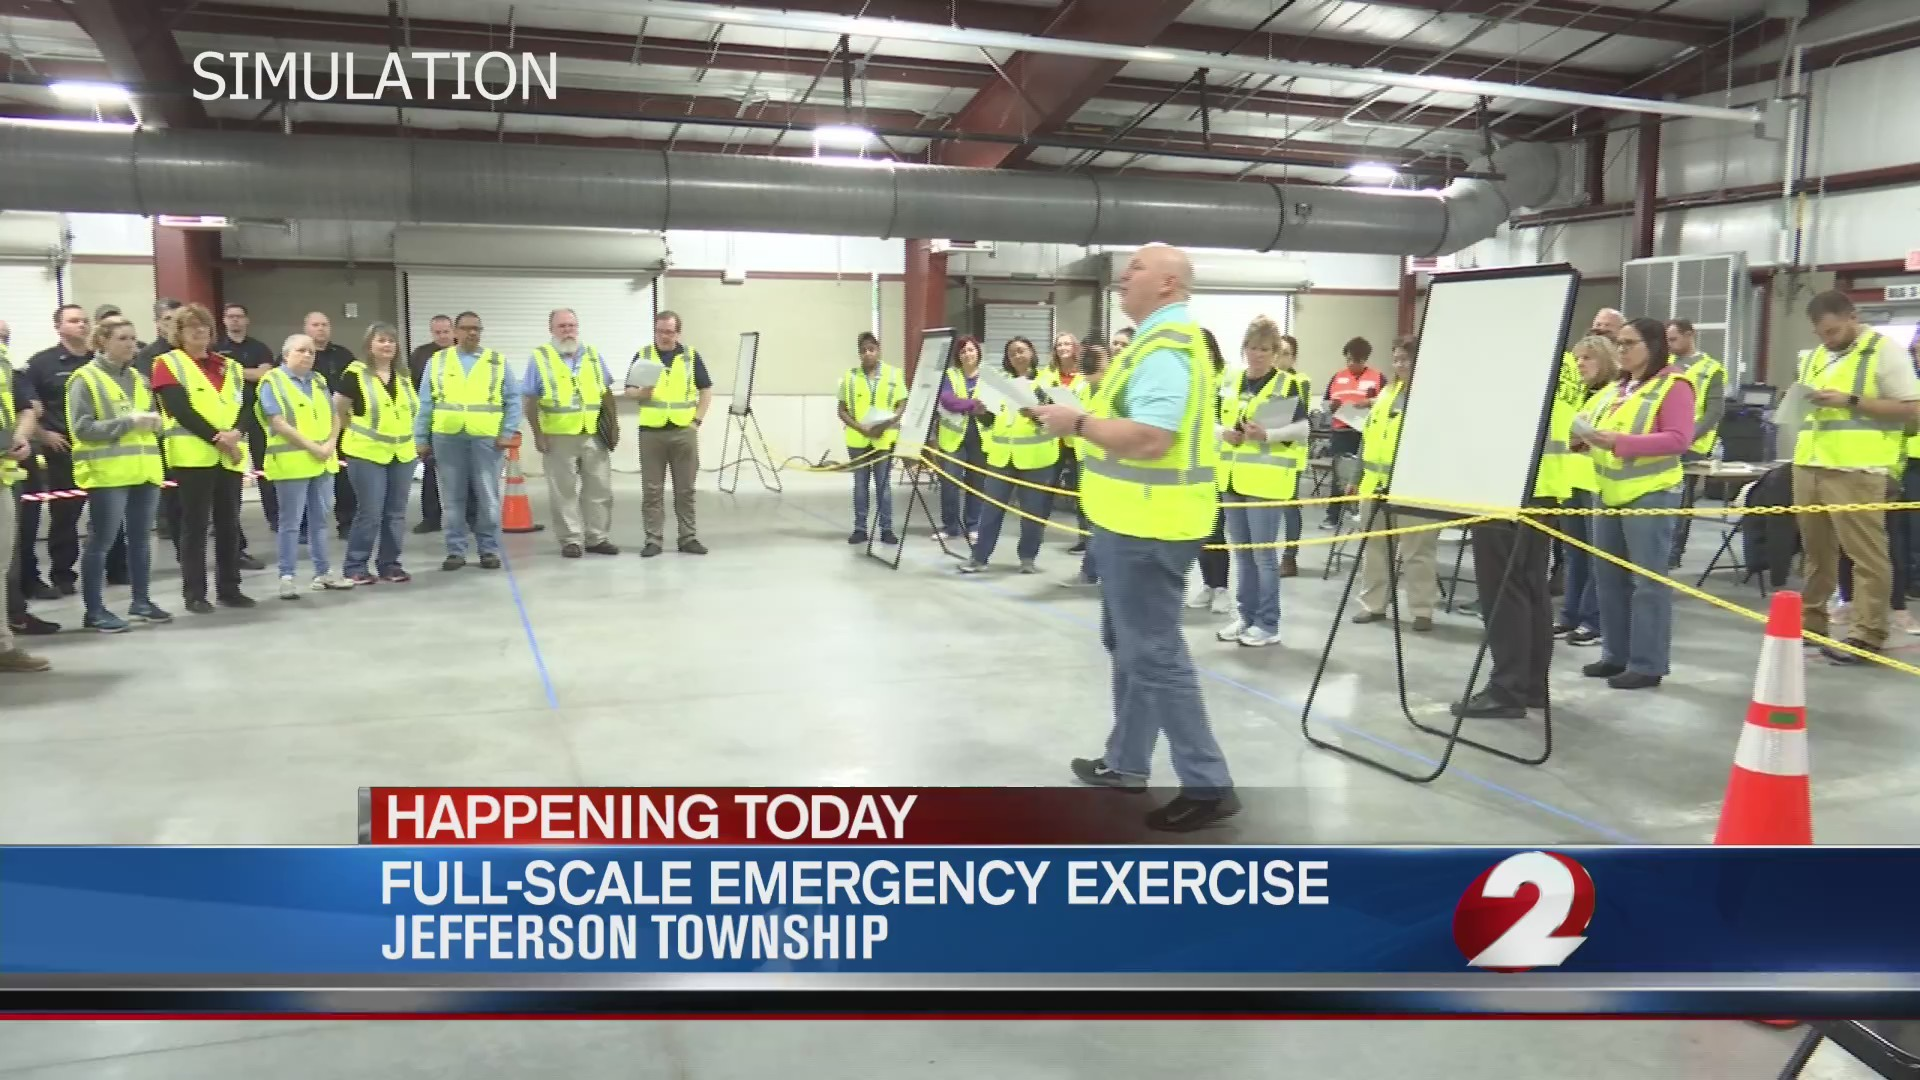 Full-scale emergency exercise in Jefferson Township